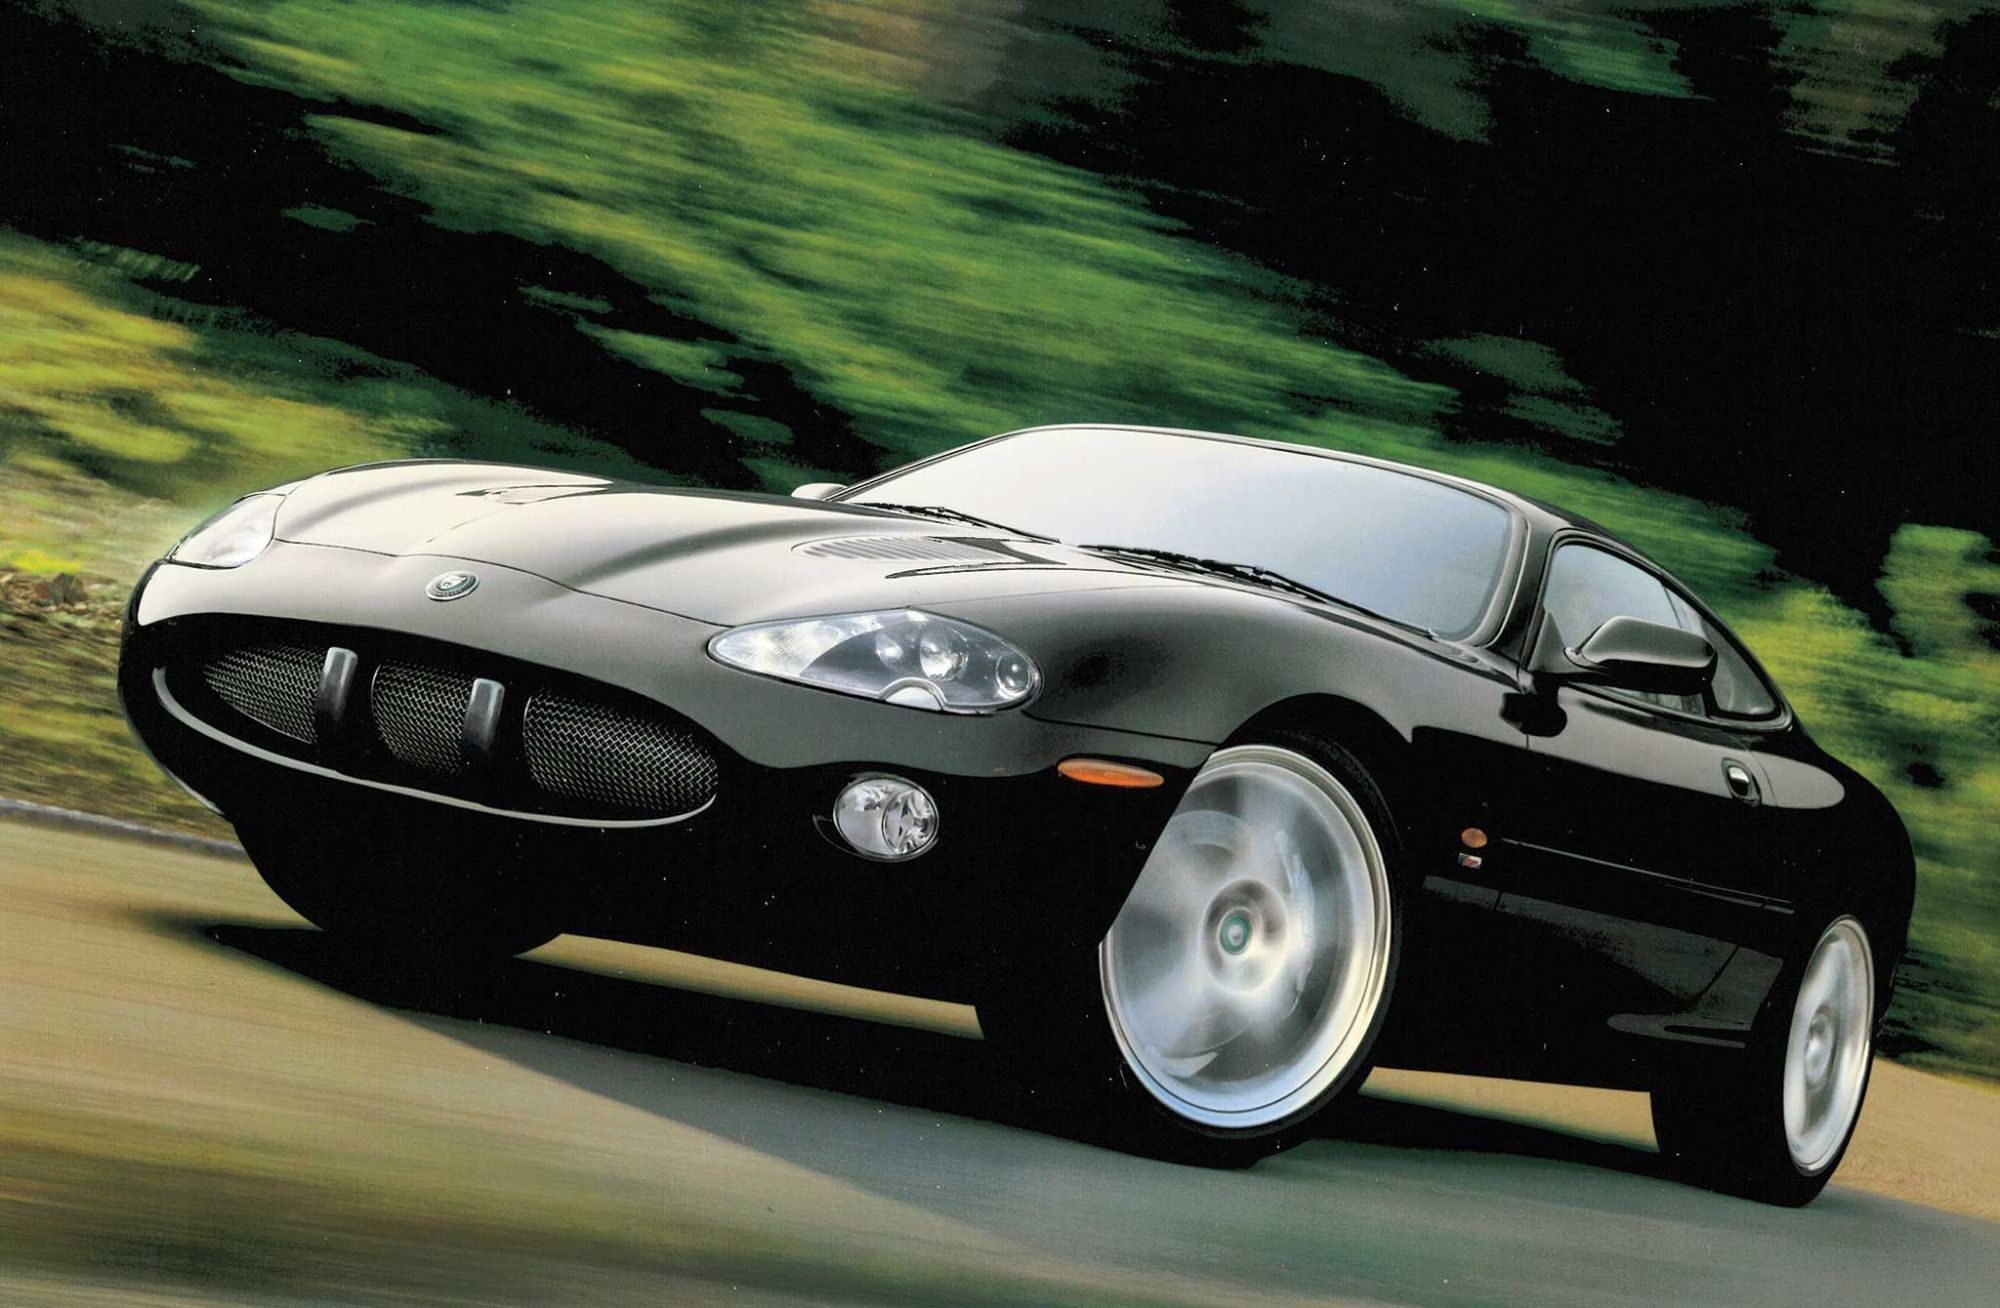 hight resolution of these cars were known internally as x100 and they were released at a pivotal time in jaguar s history in the 1980s the company was hemorrhaging money and